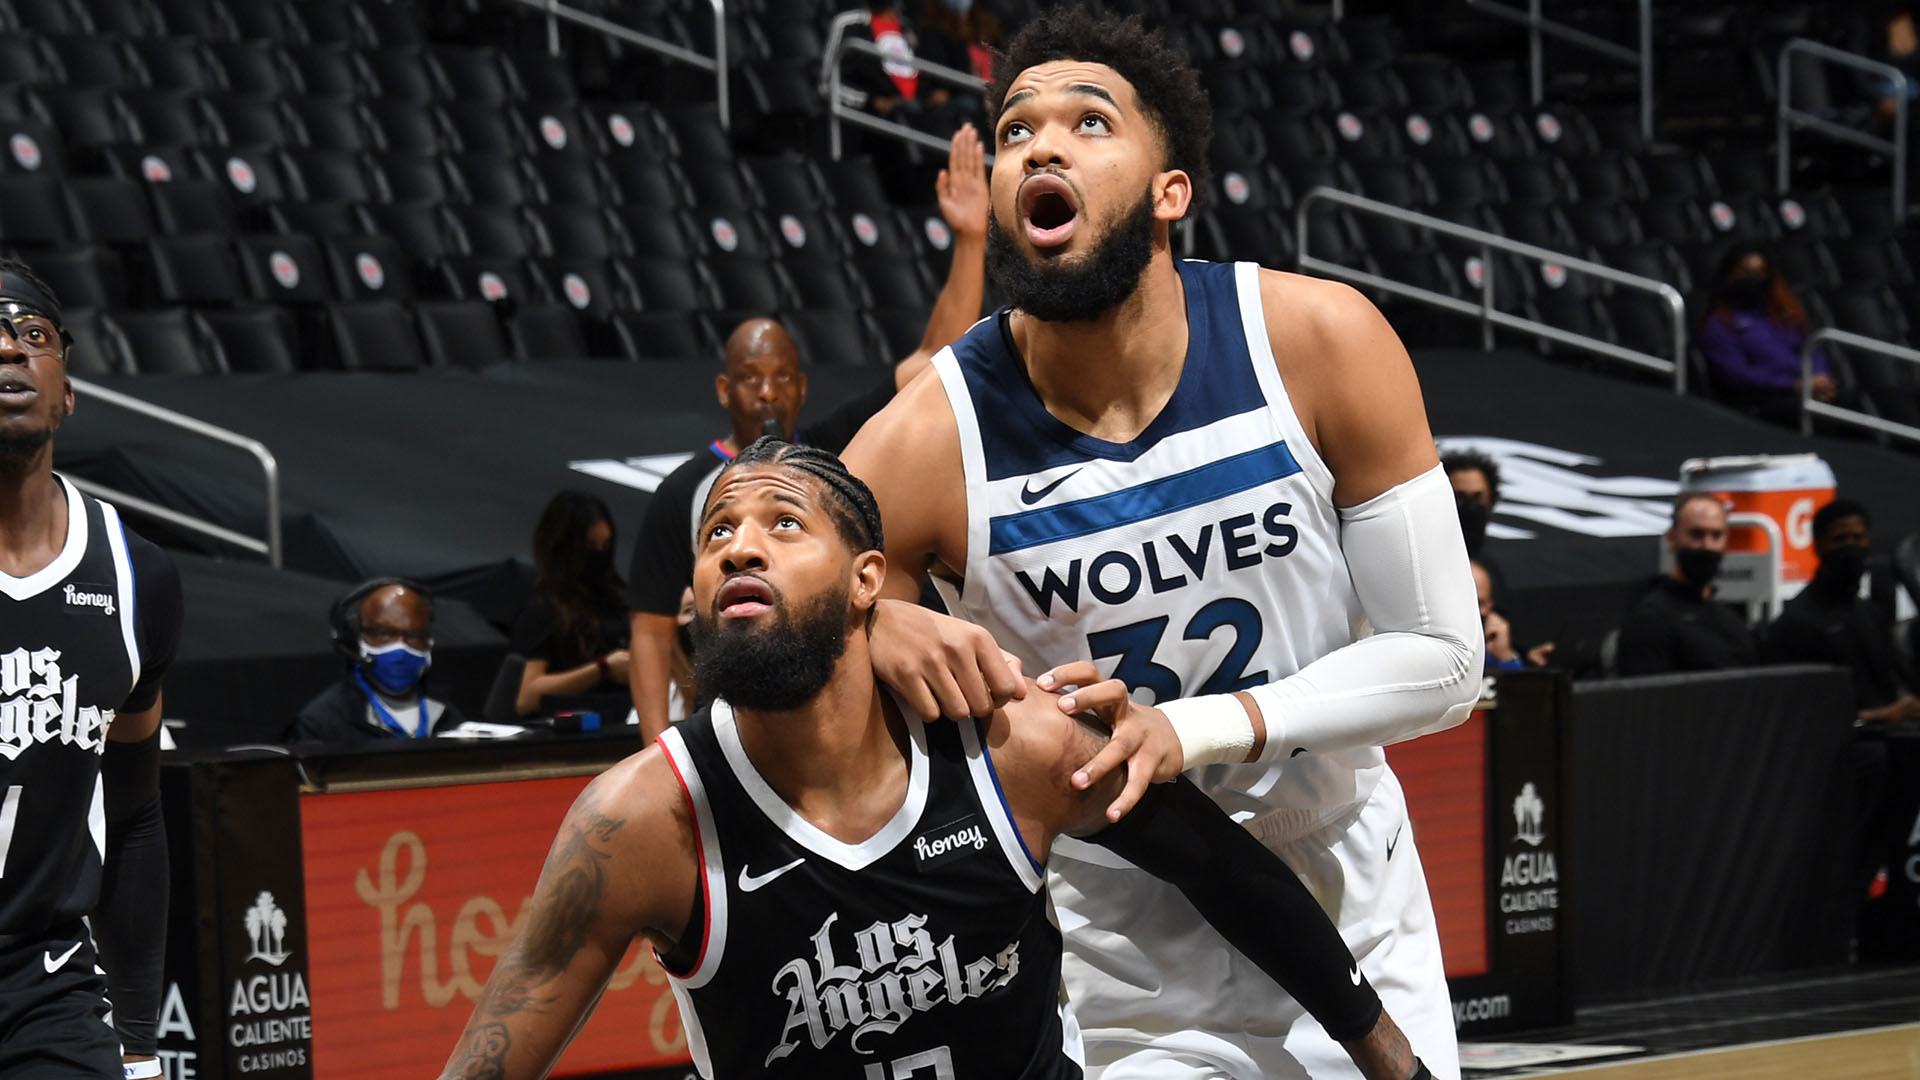 2021-22 NBA fantasy basketball: Top 250 player rankings with notes